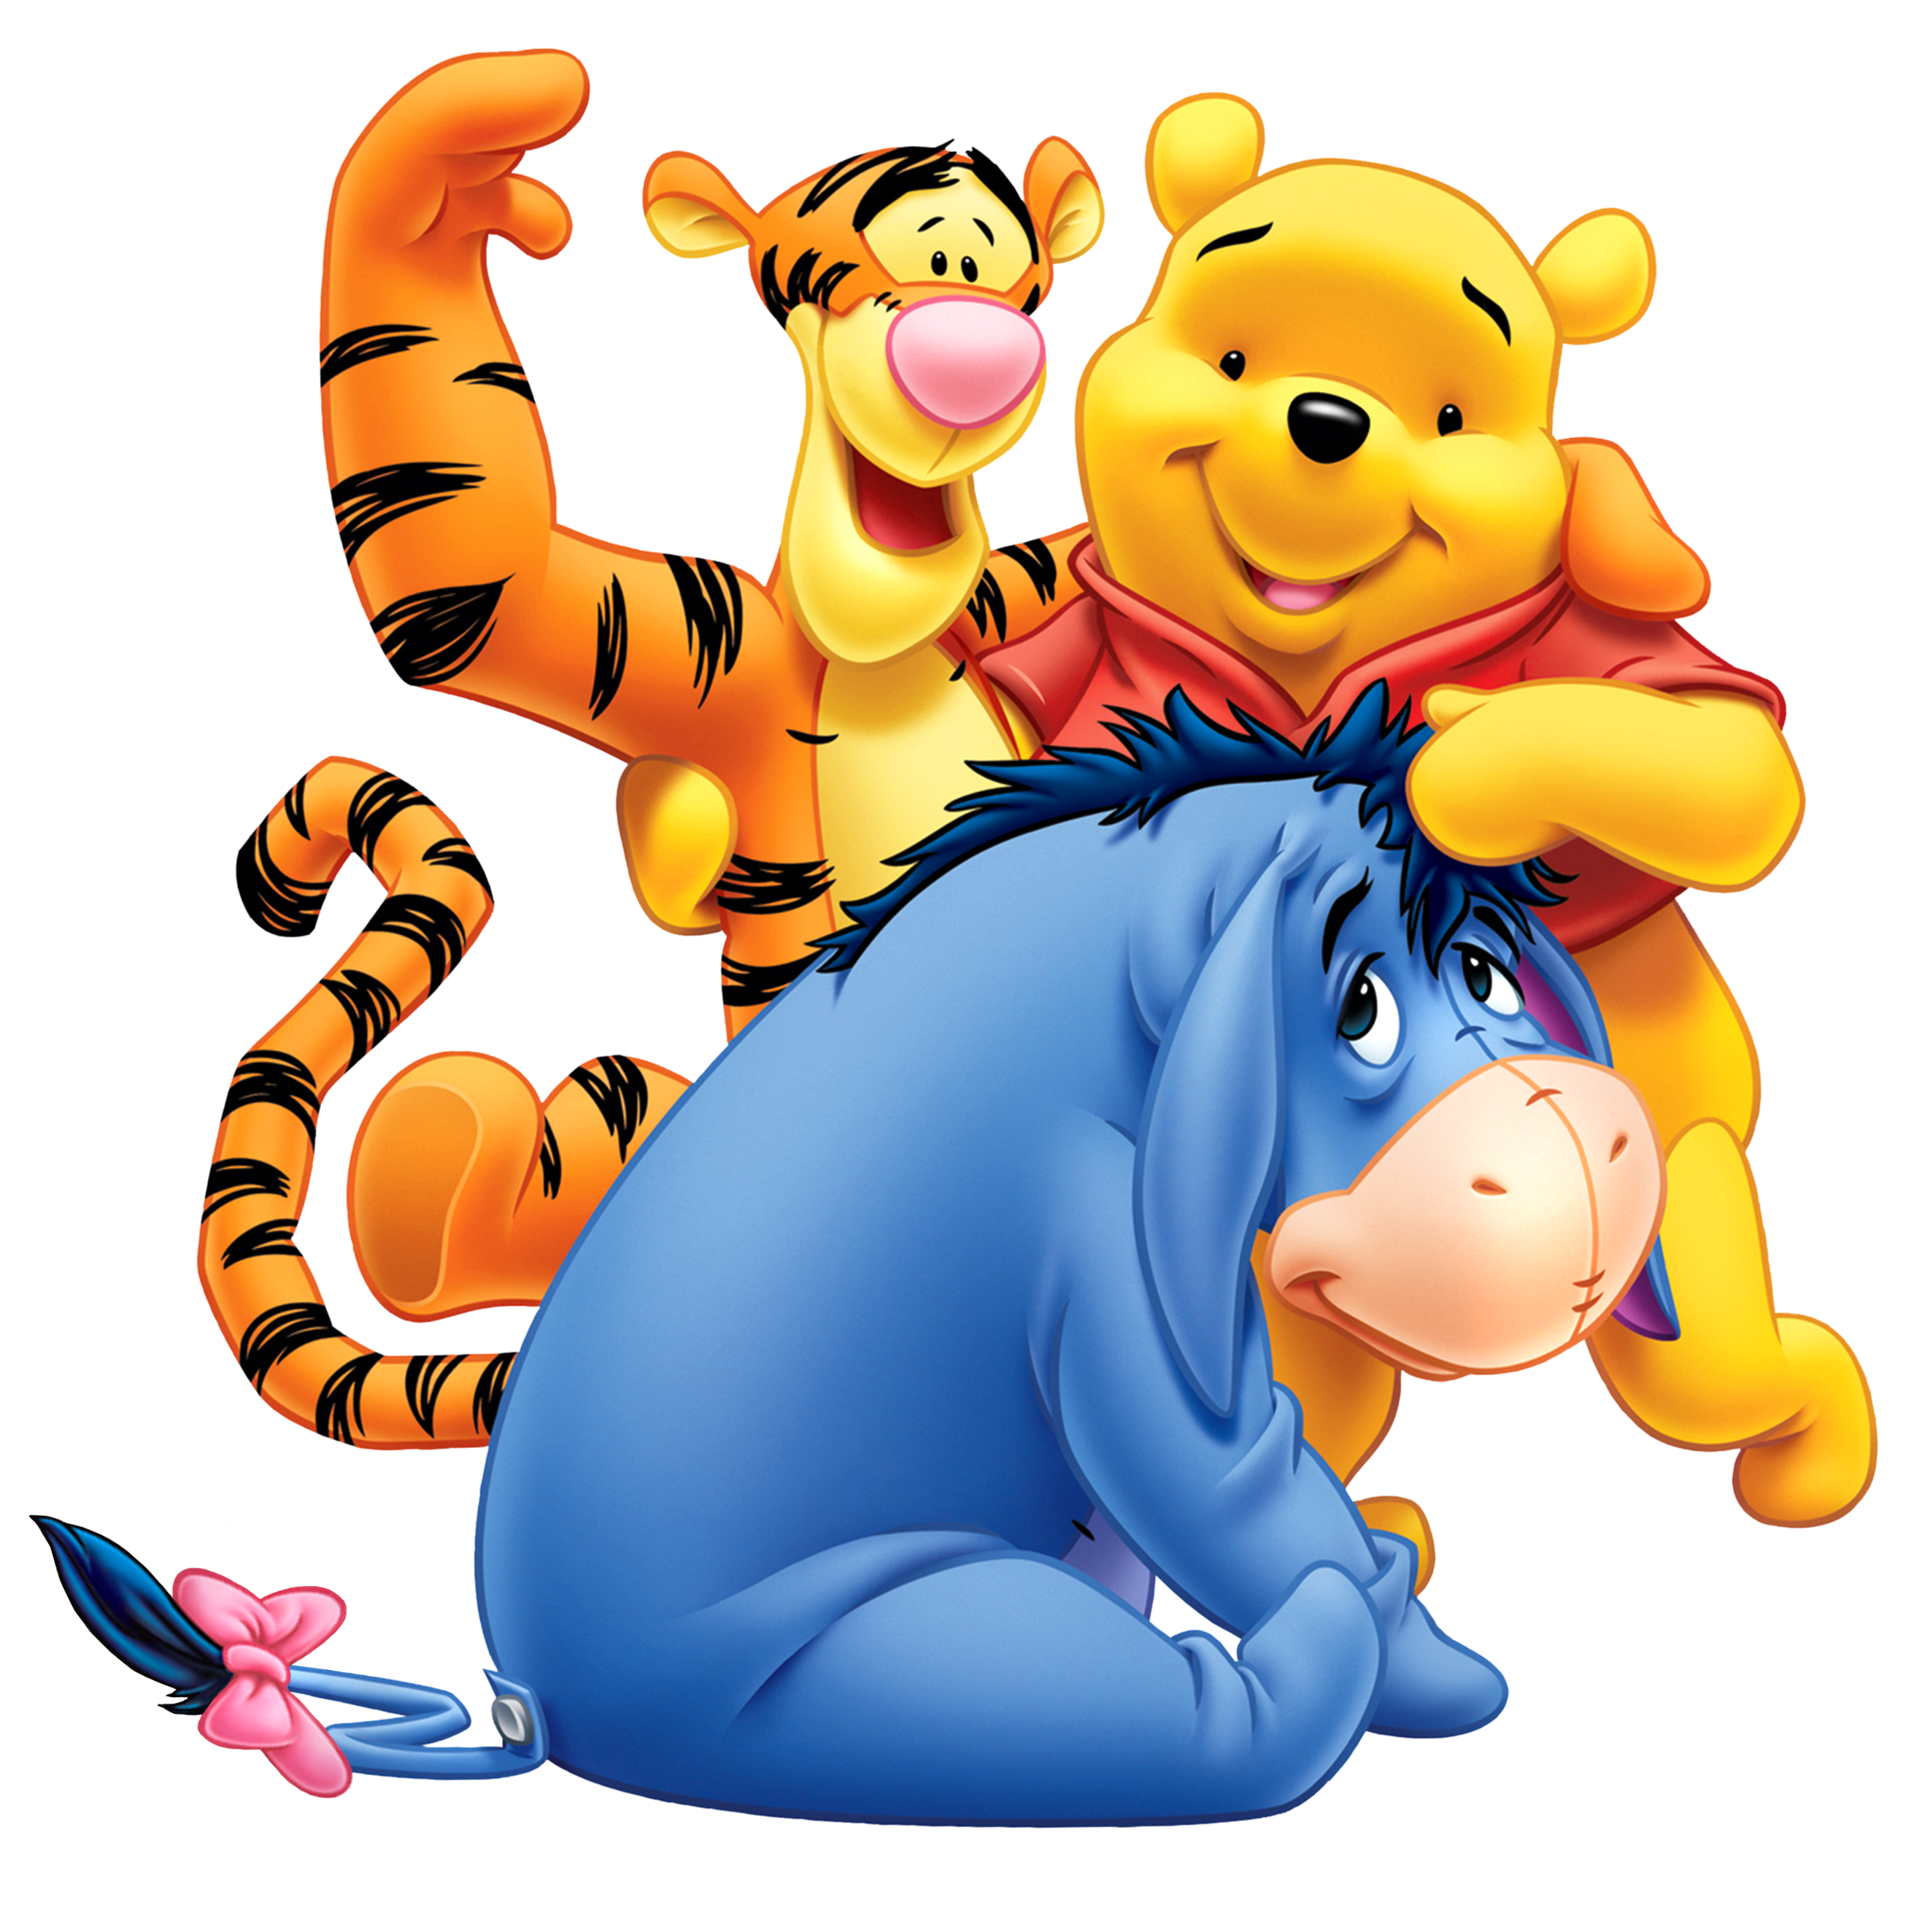 2623x2647 Winnie The Pooh Eeyore And Tiger Transparent Png Clip Art Image